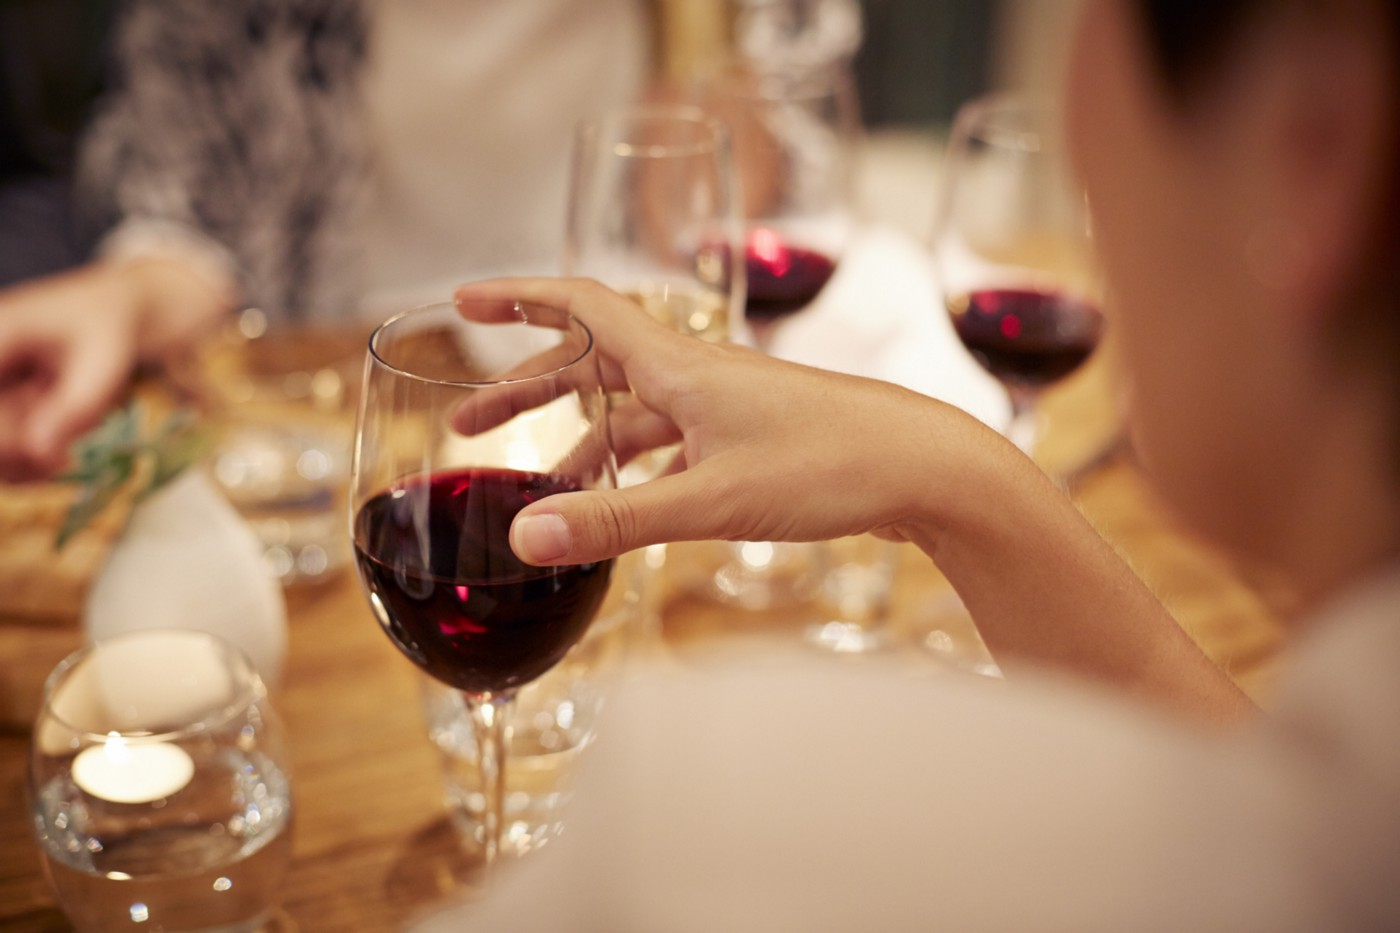 Woman holding a wine glass filled with red wine.